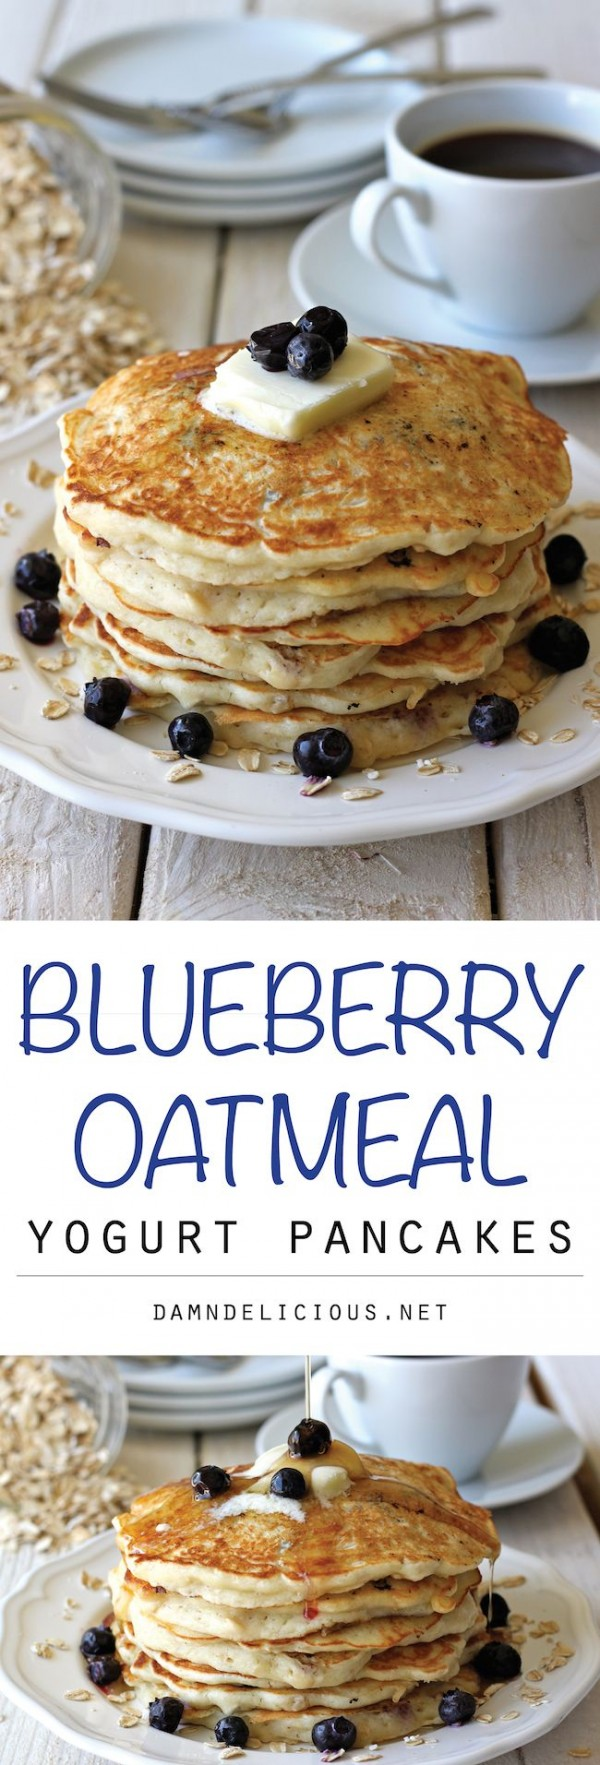 Get the recipe Blueberry Oatmeal Yogurt Pancakes @recipes_to_go